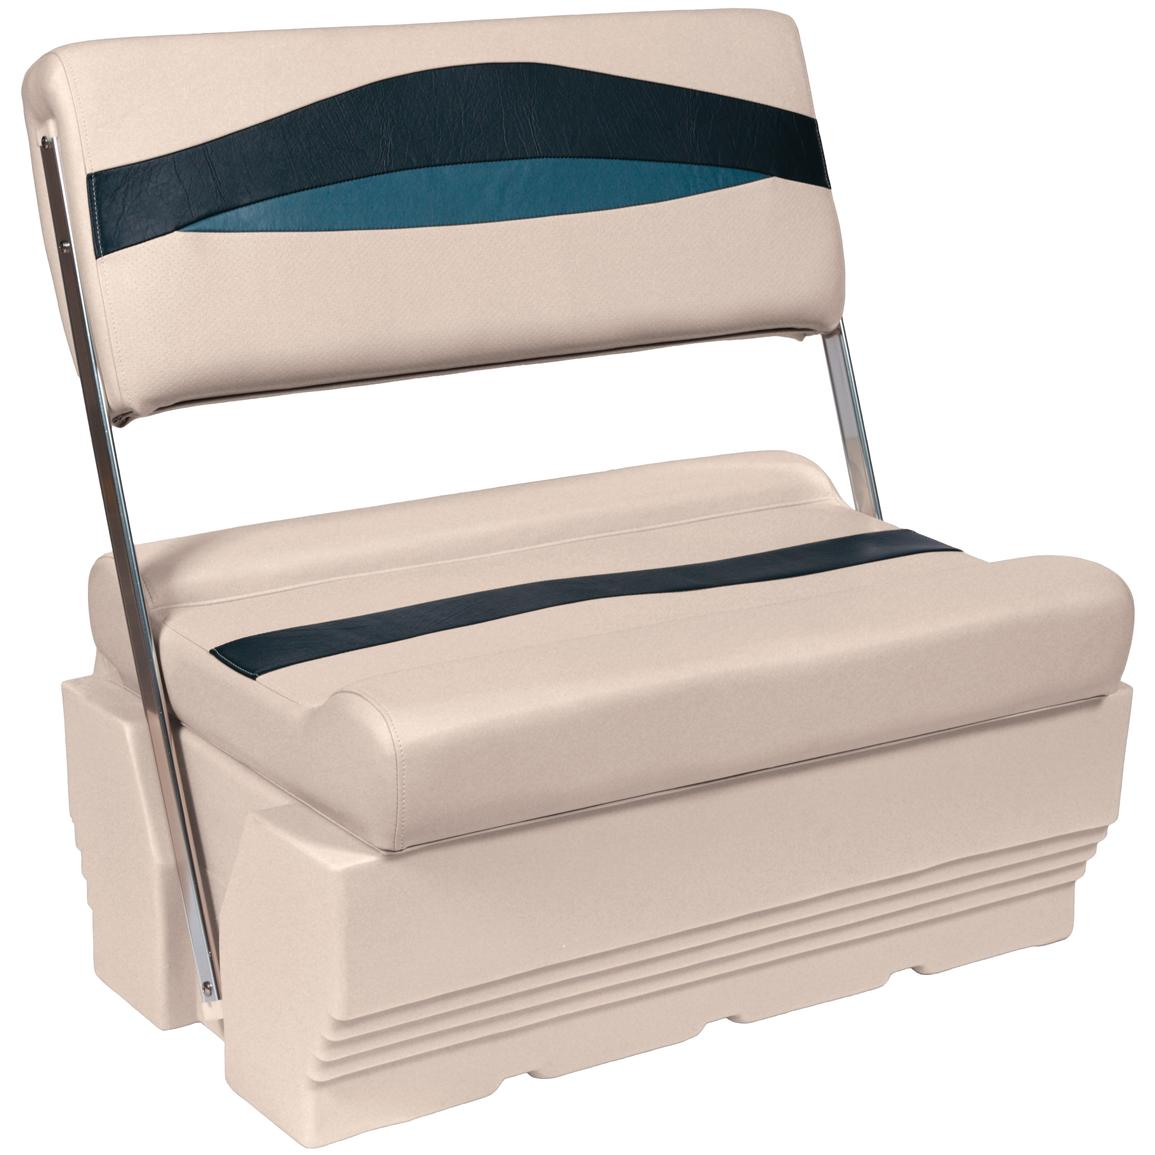 Wise® Premier 1100 Series Pontoon Flip-Flop Seat, Color A